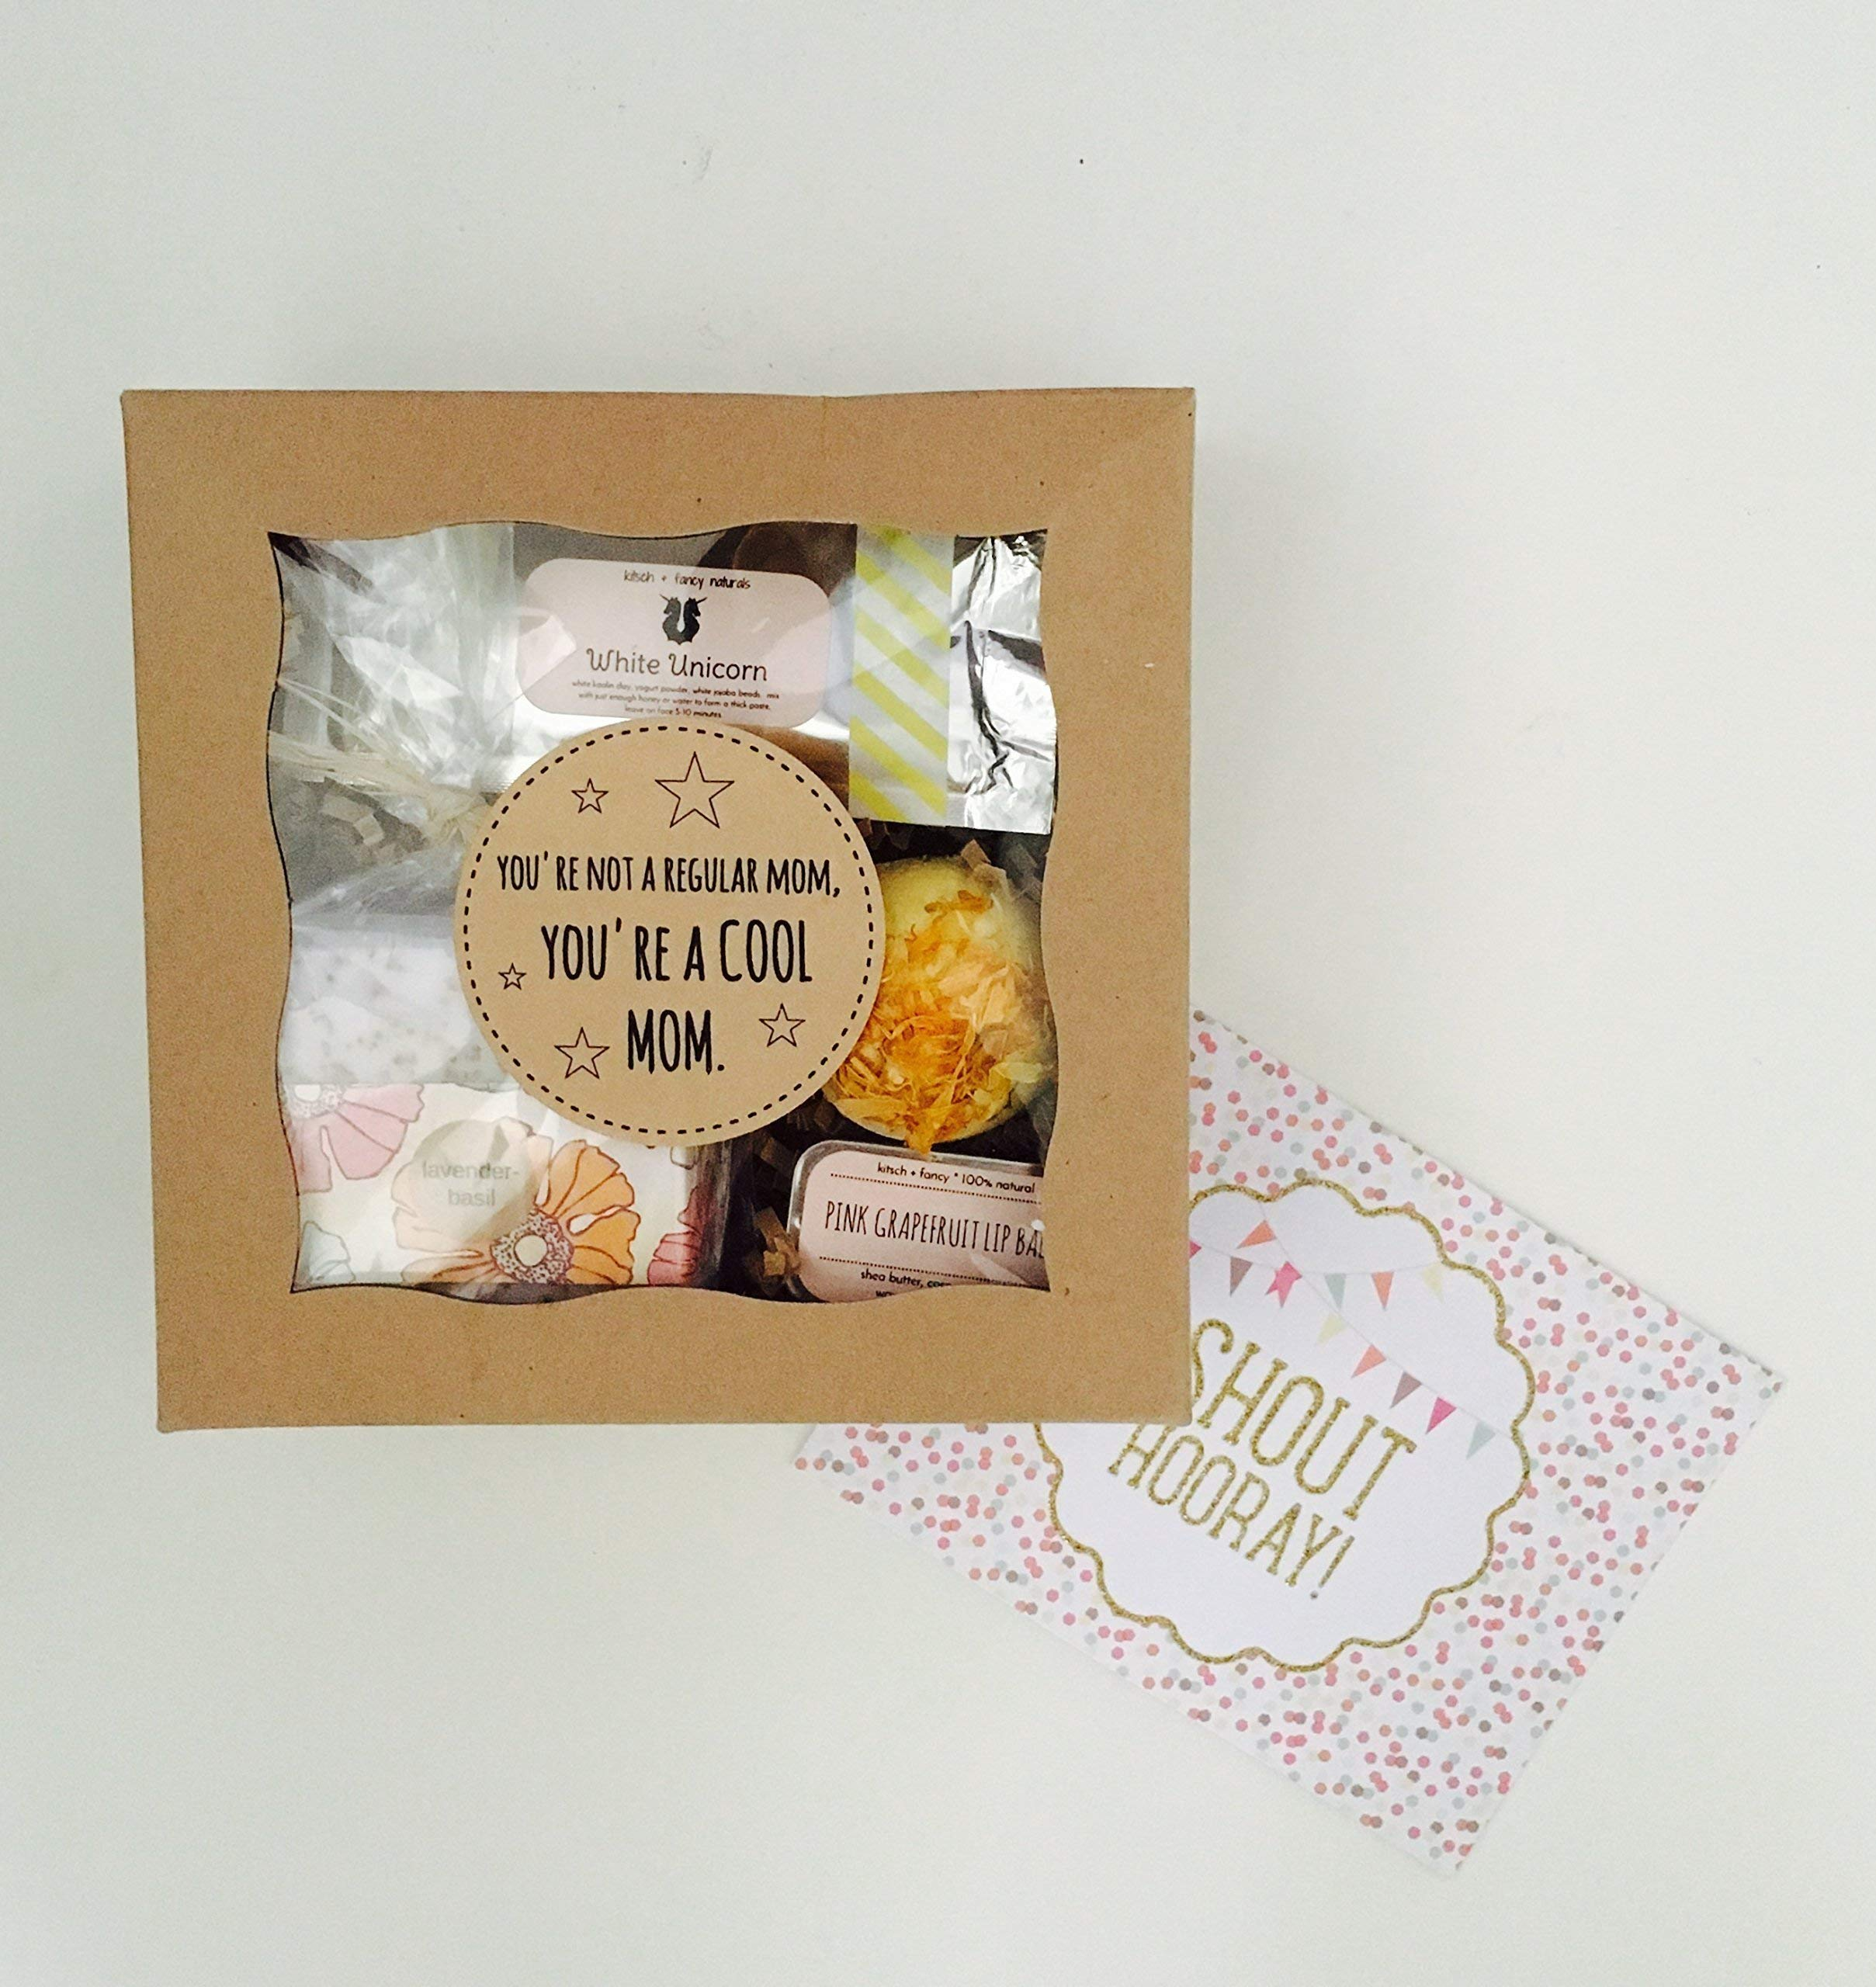 You're not a regular mom, you're a cool mom: Gift box for mother's day or New Mom Gift Set